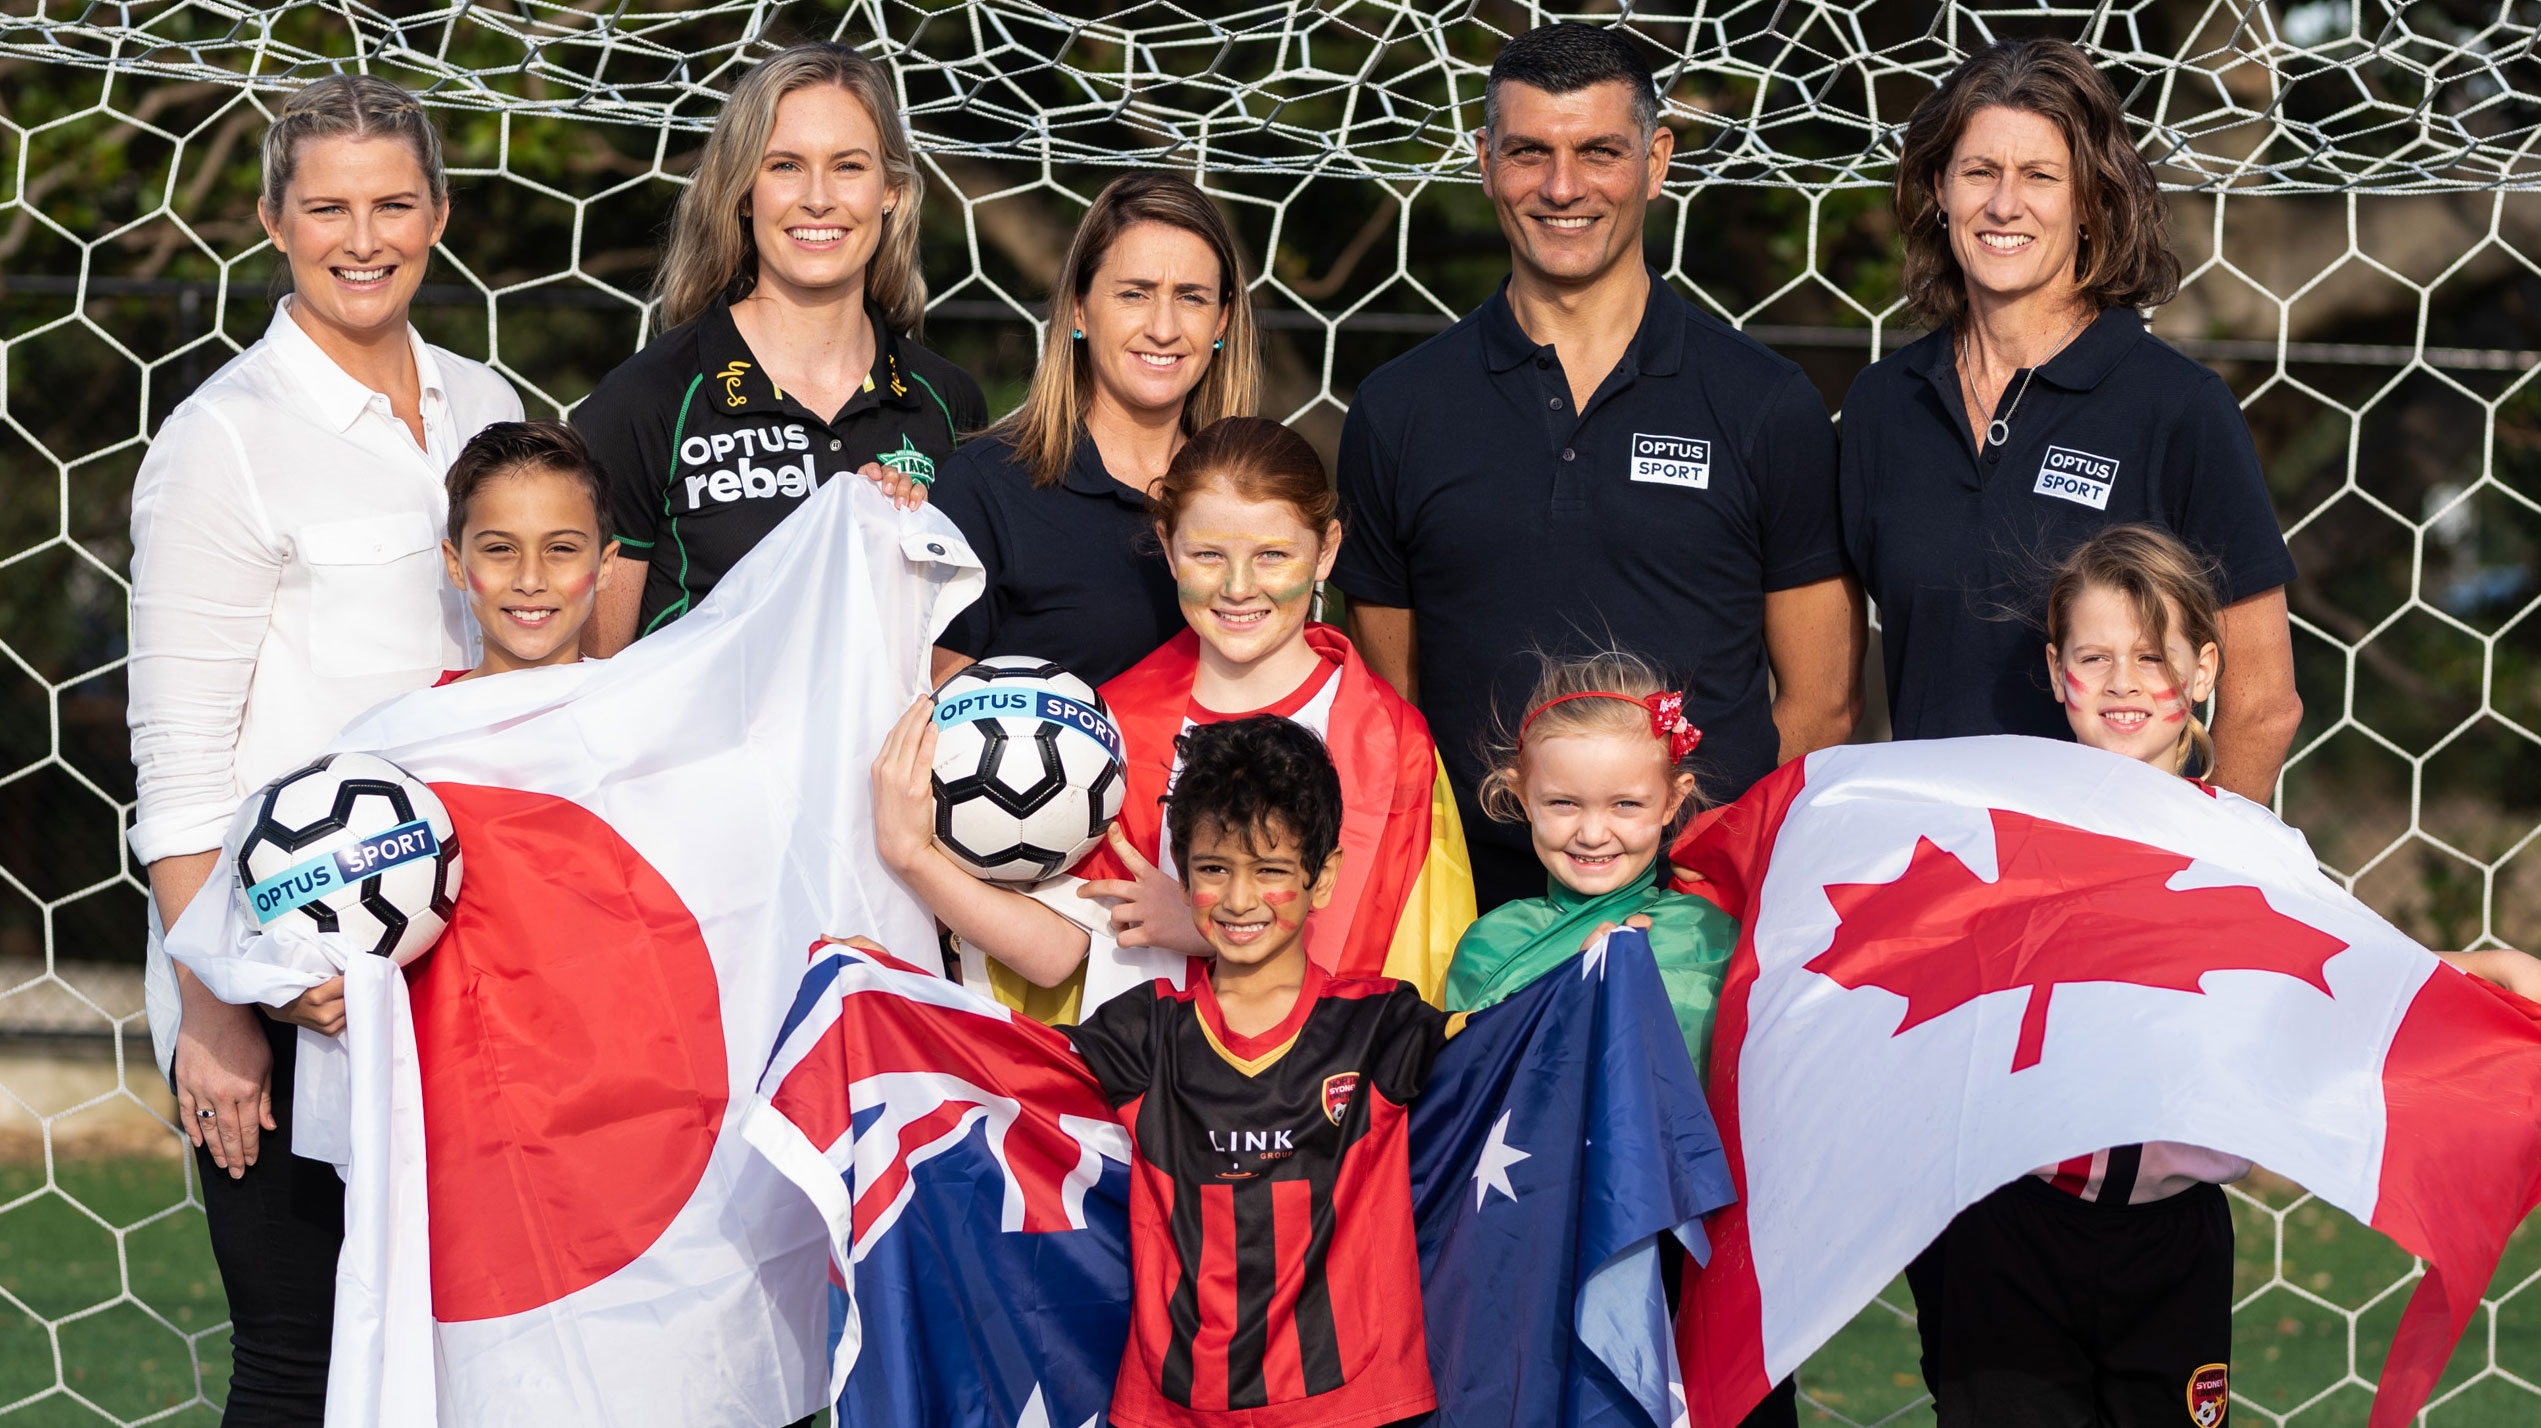 Olympic swimmer Leisel Jones and WBBL cricketer Holly Ferling join football legends Heather Garriock, John Aloisi and Cheryl Salisbury at an Optus Sport announcement with kids from North Sydney United.